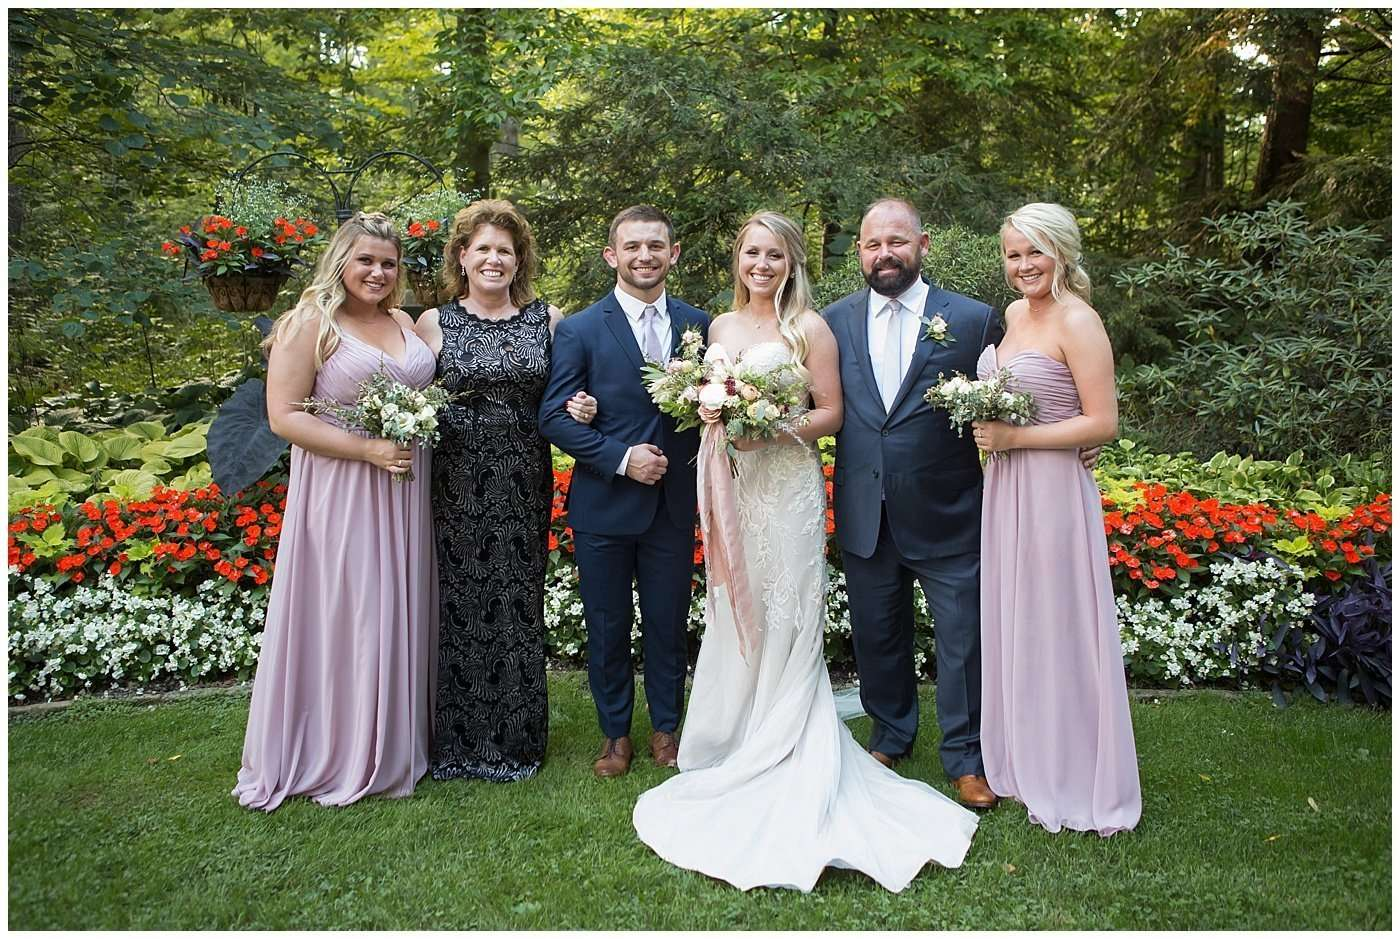 Garden Inspired Wedding at Kingwood Center 136